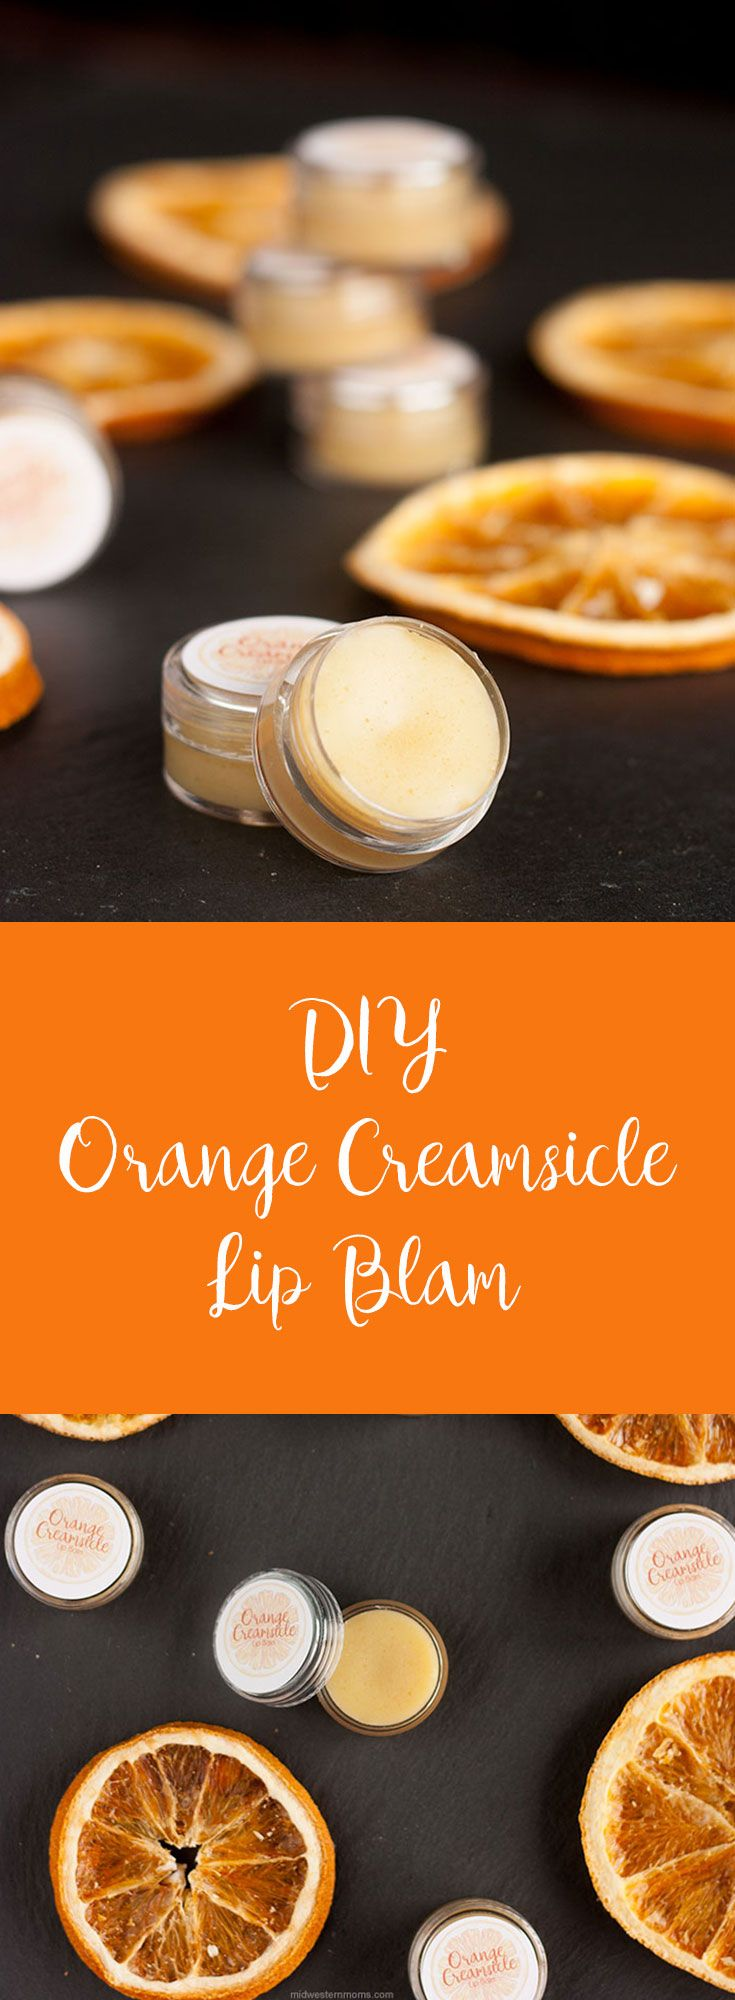 Balm christmas gift turn old eos containers into cool crafts ideas - Diy Orange Creamsicle Lip Balm